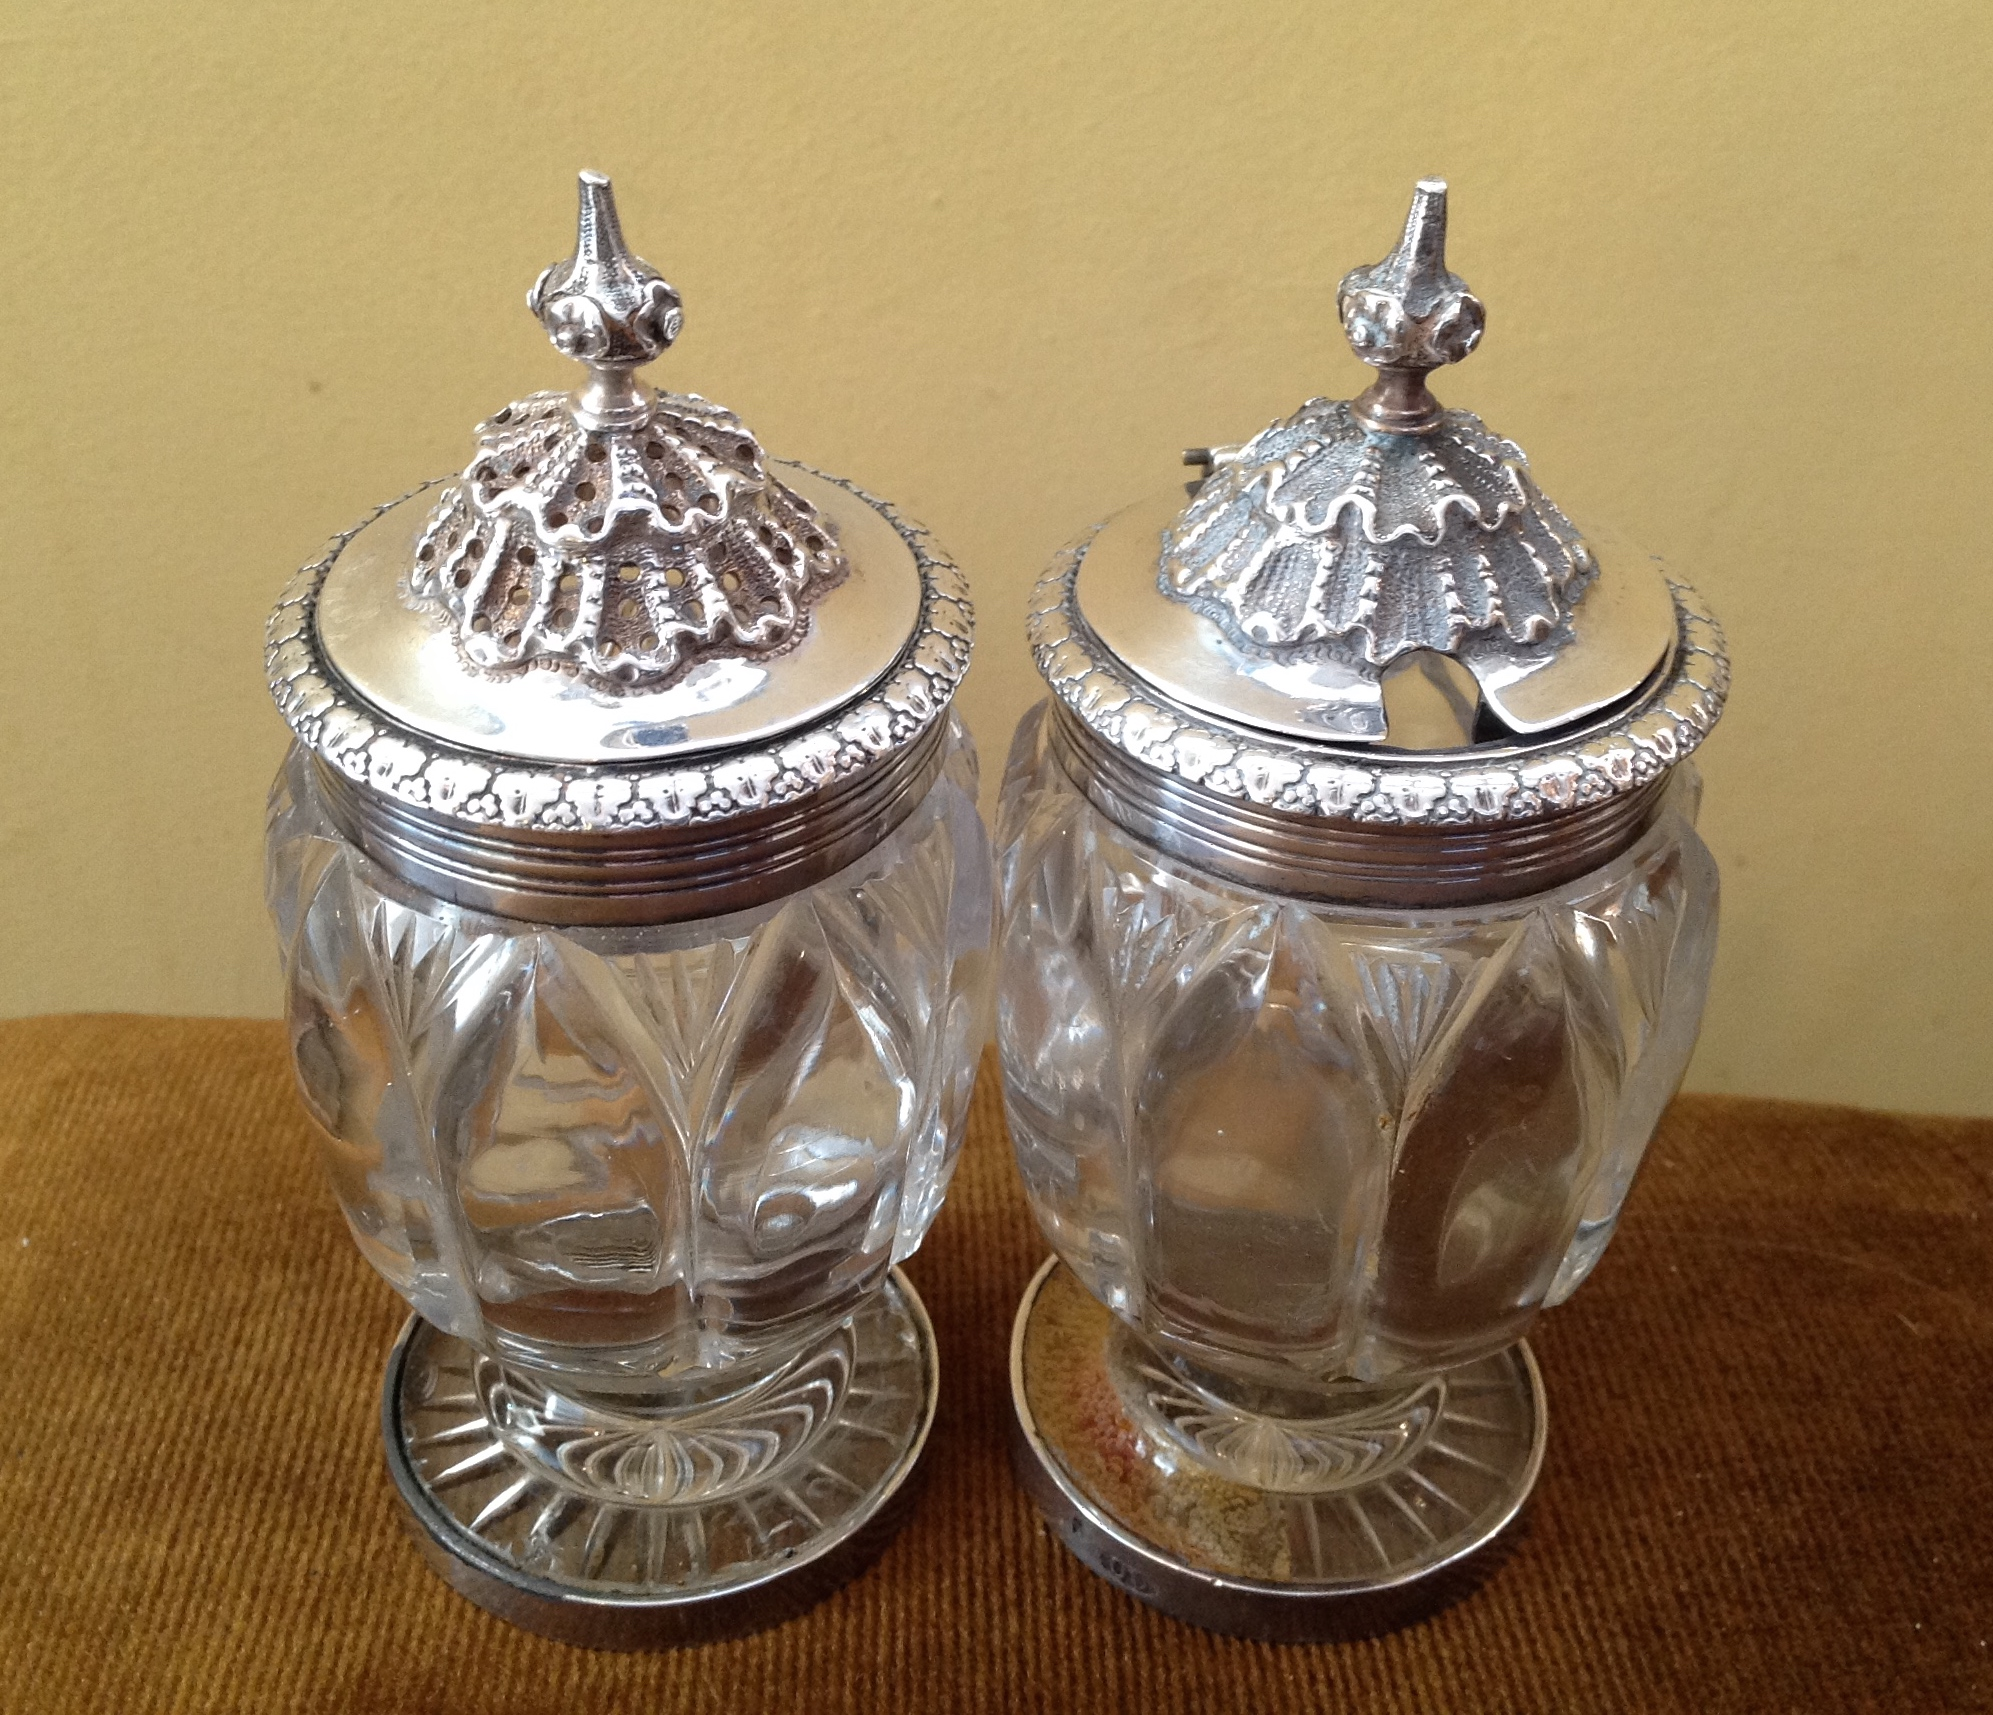 Lot 45 - Pair London 1827 silver mounted glass mustard and pepper pots with restoration